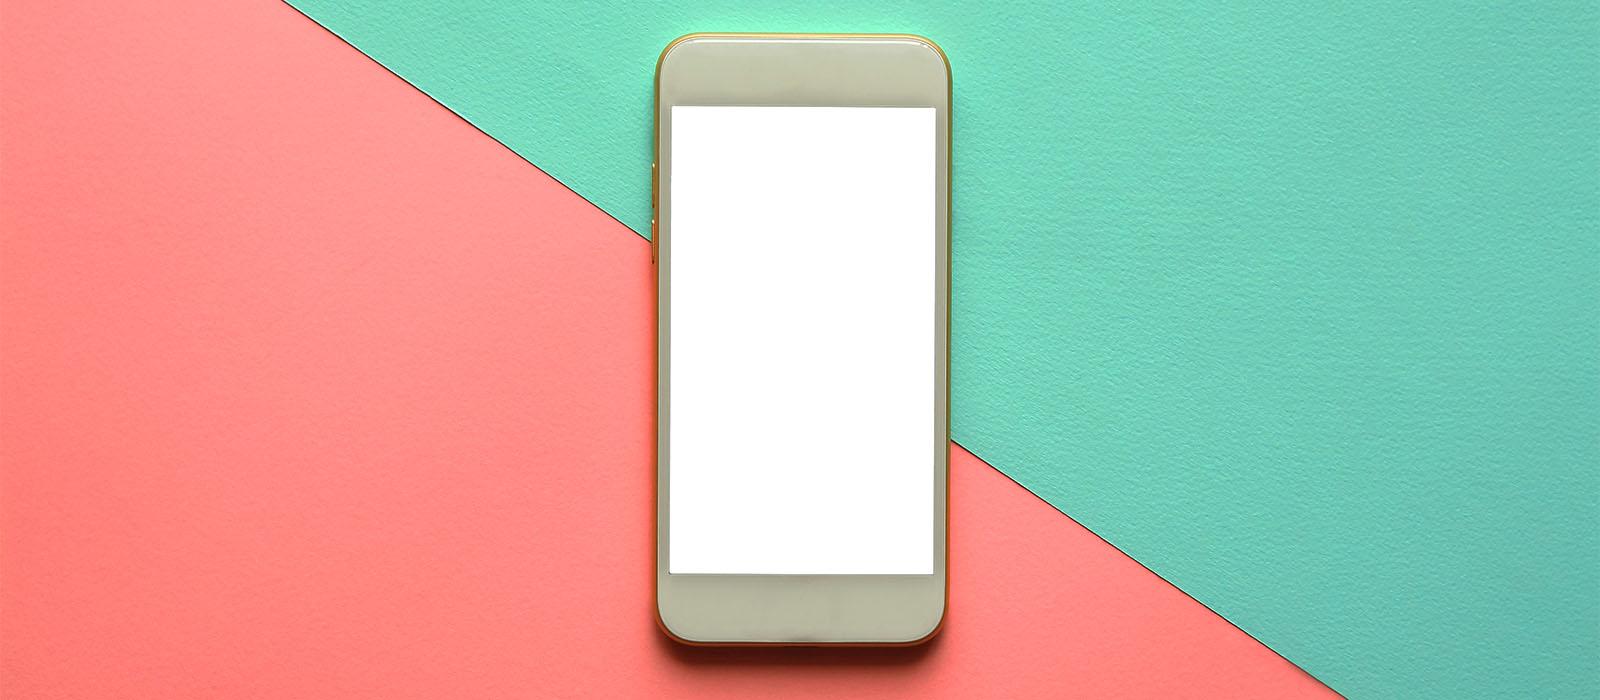 cellphone on colorful background